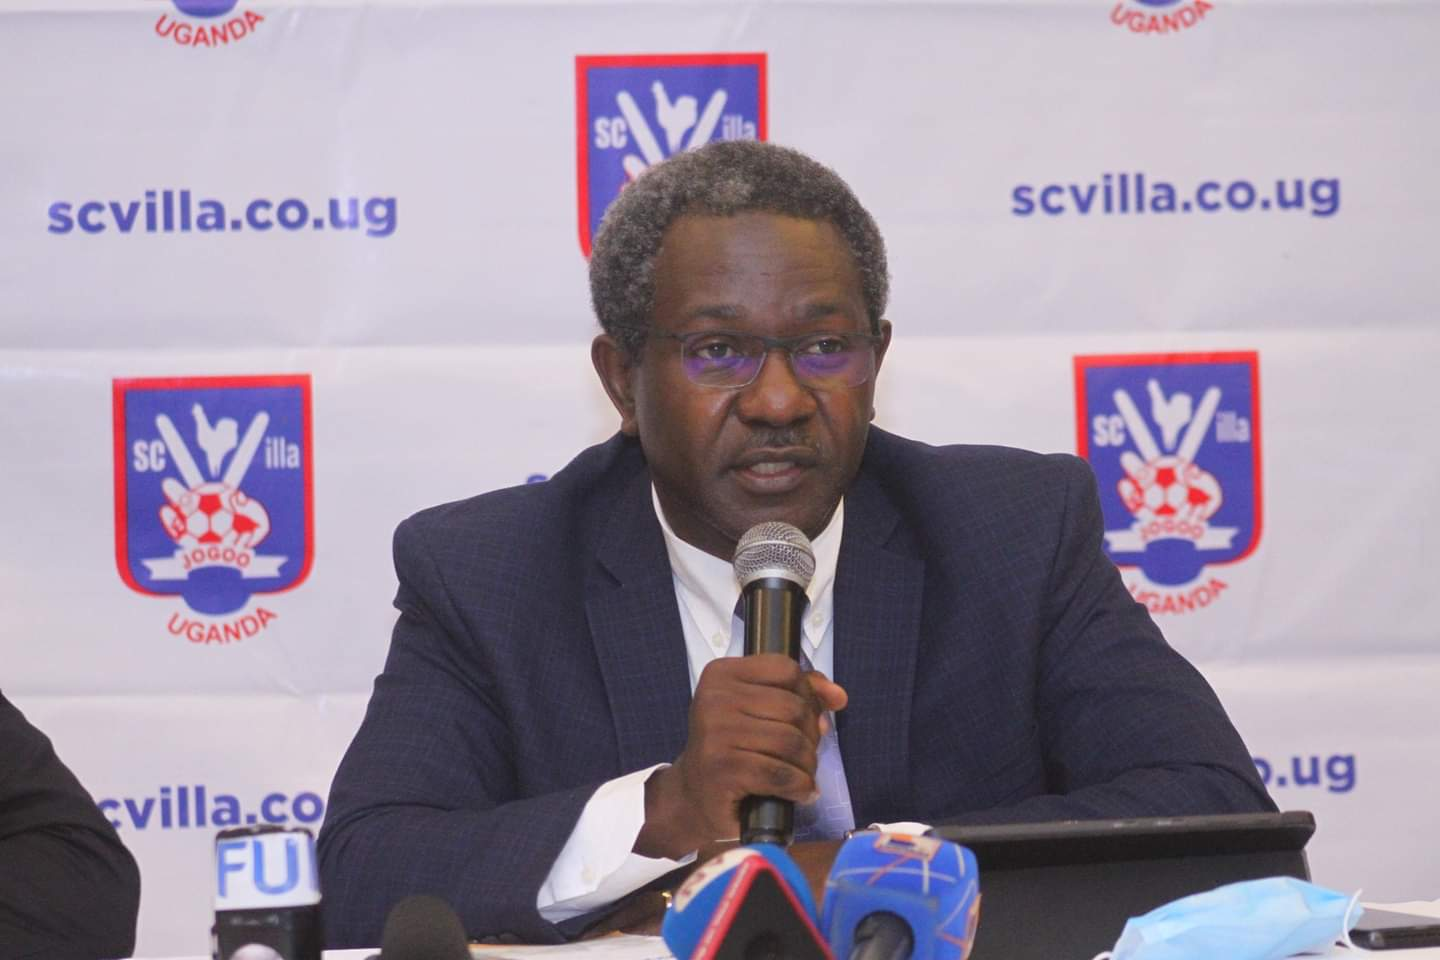 SC Villa interim Chairman William Nkemba speaking at a press briefing on Wednesday. (PHOTO/Courtesy)